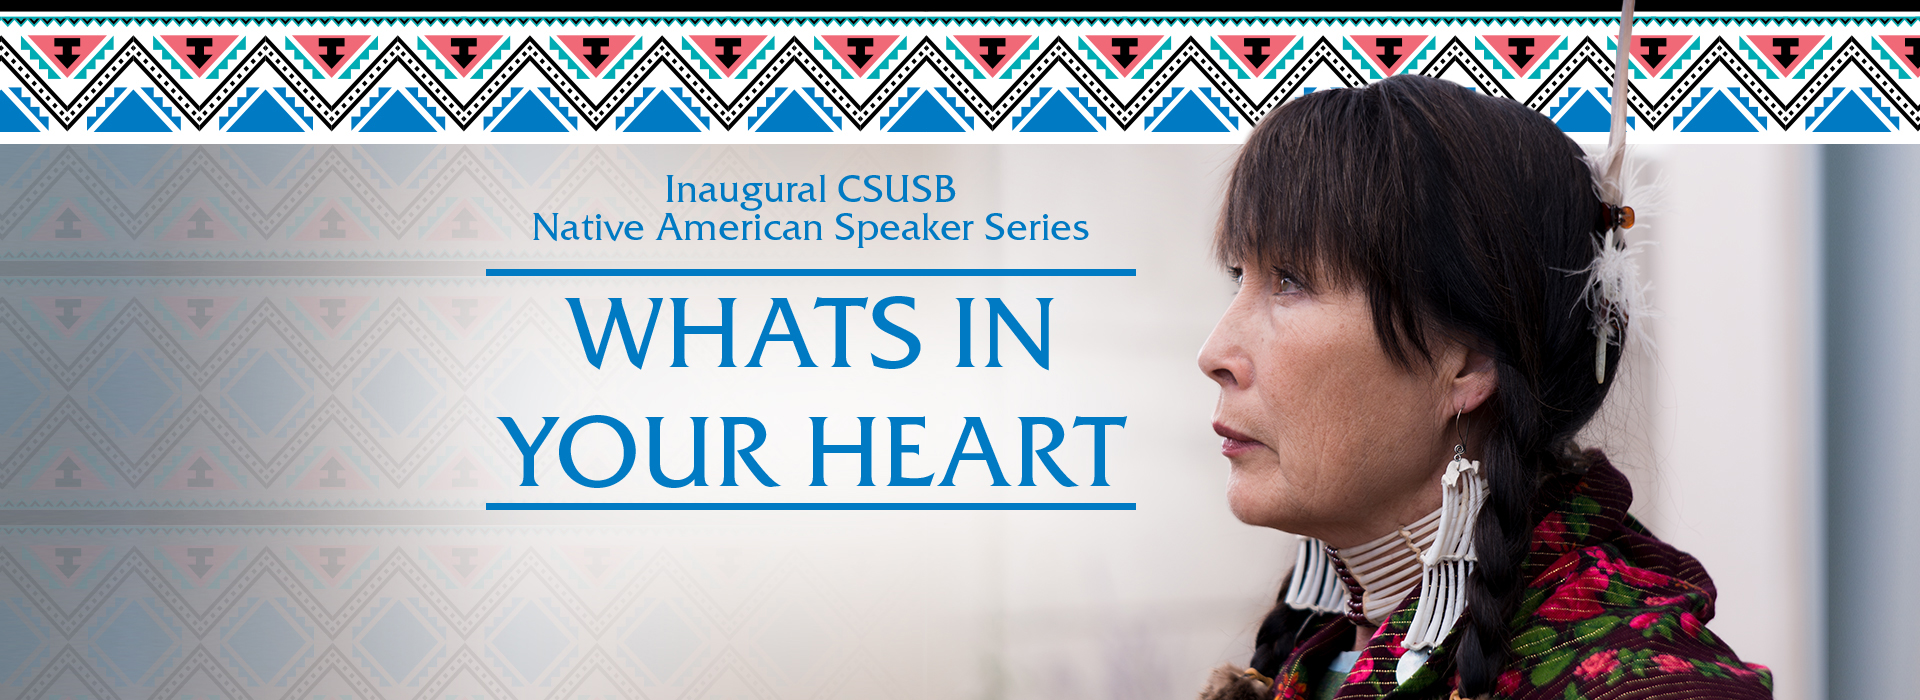 CSUSB to launch Native American speaker series featuring Charlene Teters, Native American artist and educator